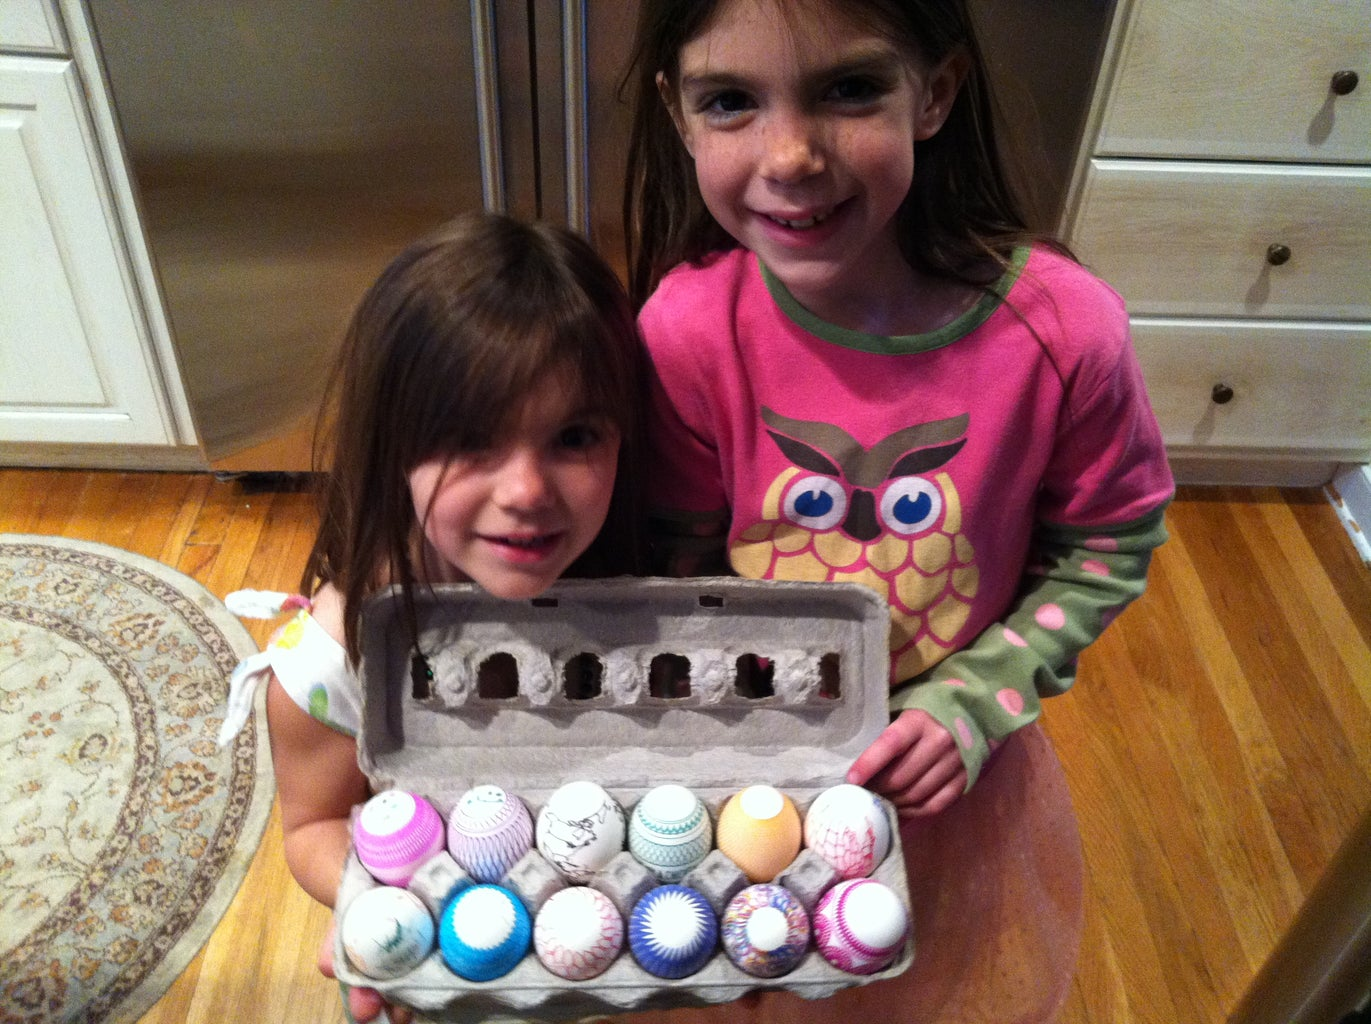 Share Your Decorated Eggs